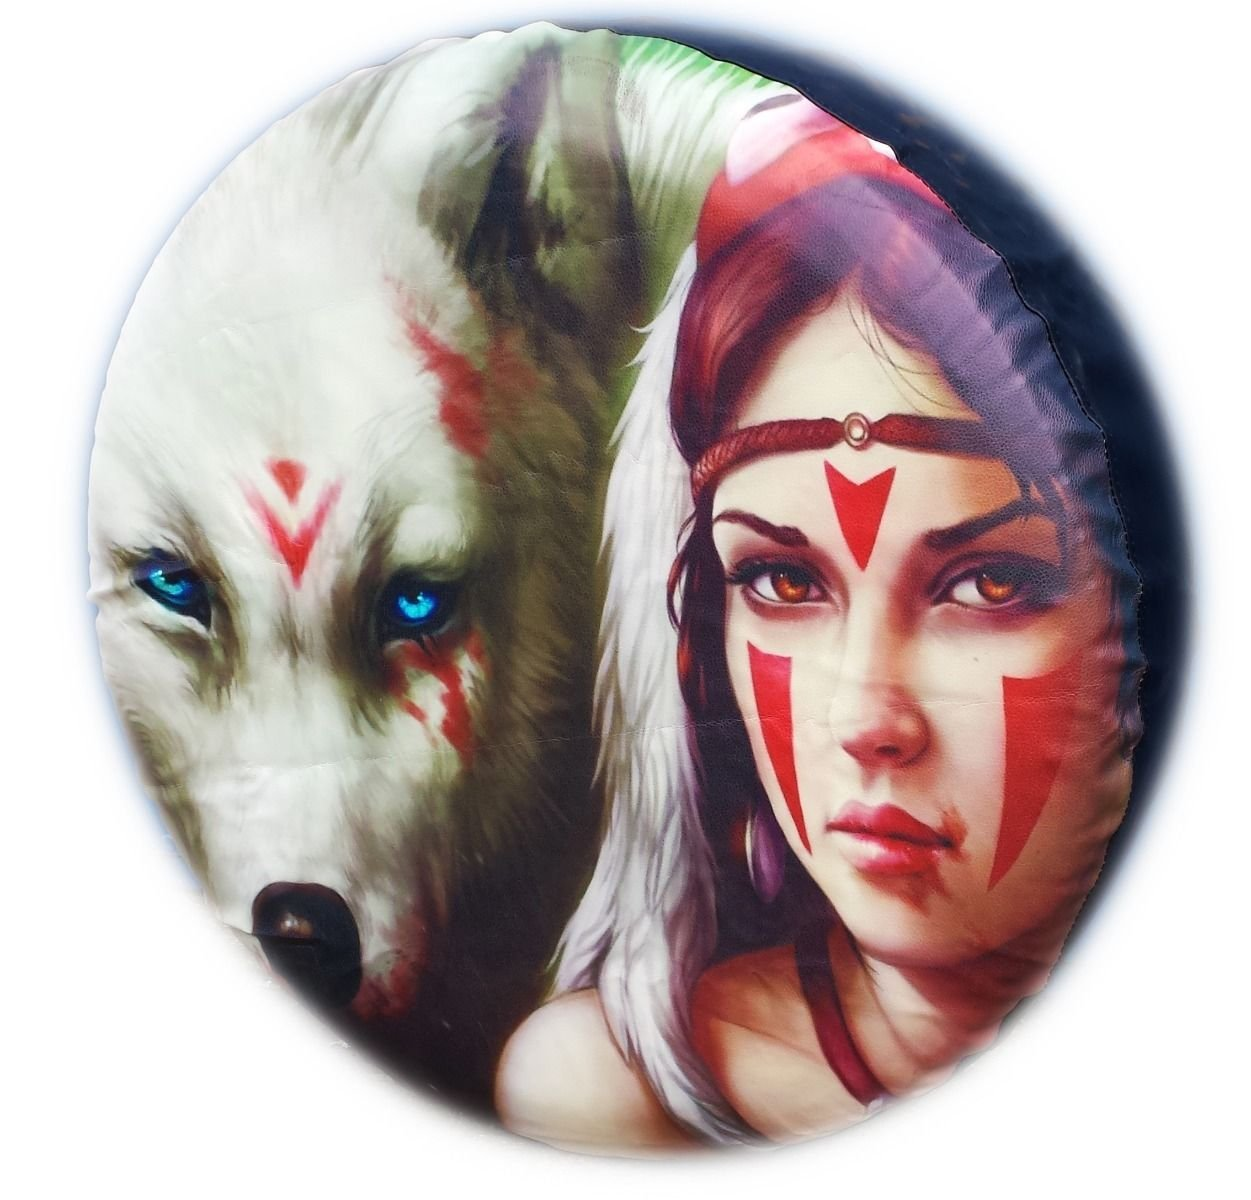 WHEEL COVER WHEELCOVER SPARE TYRE 4X4 WOLF GIRL EROTIC ART - LET US KNOW YOUR SIZE BargainworldUK